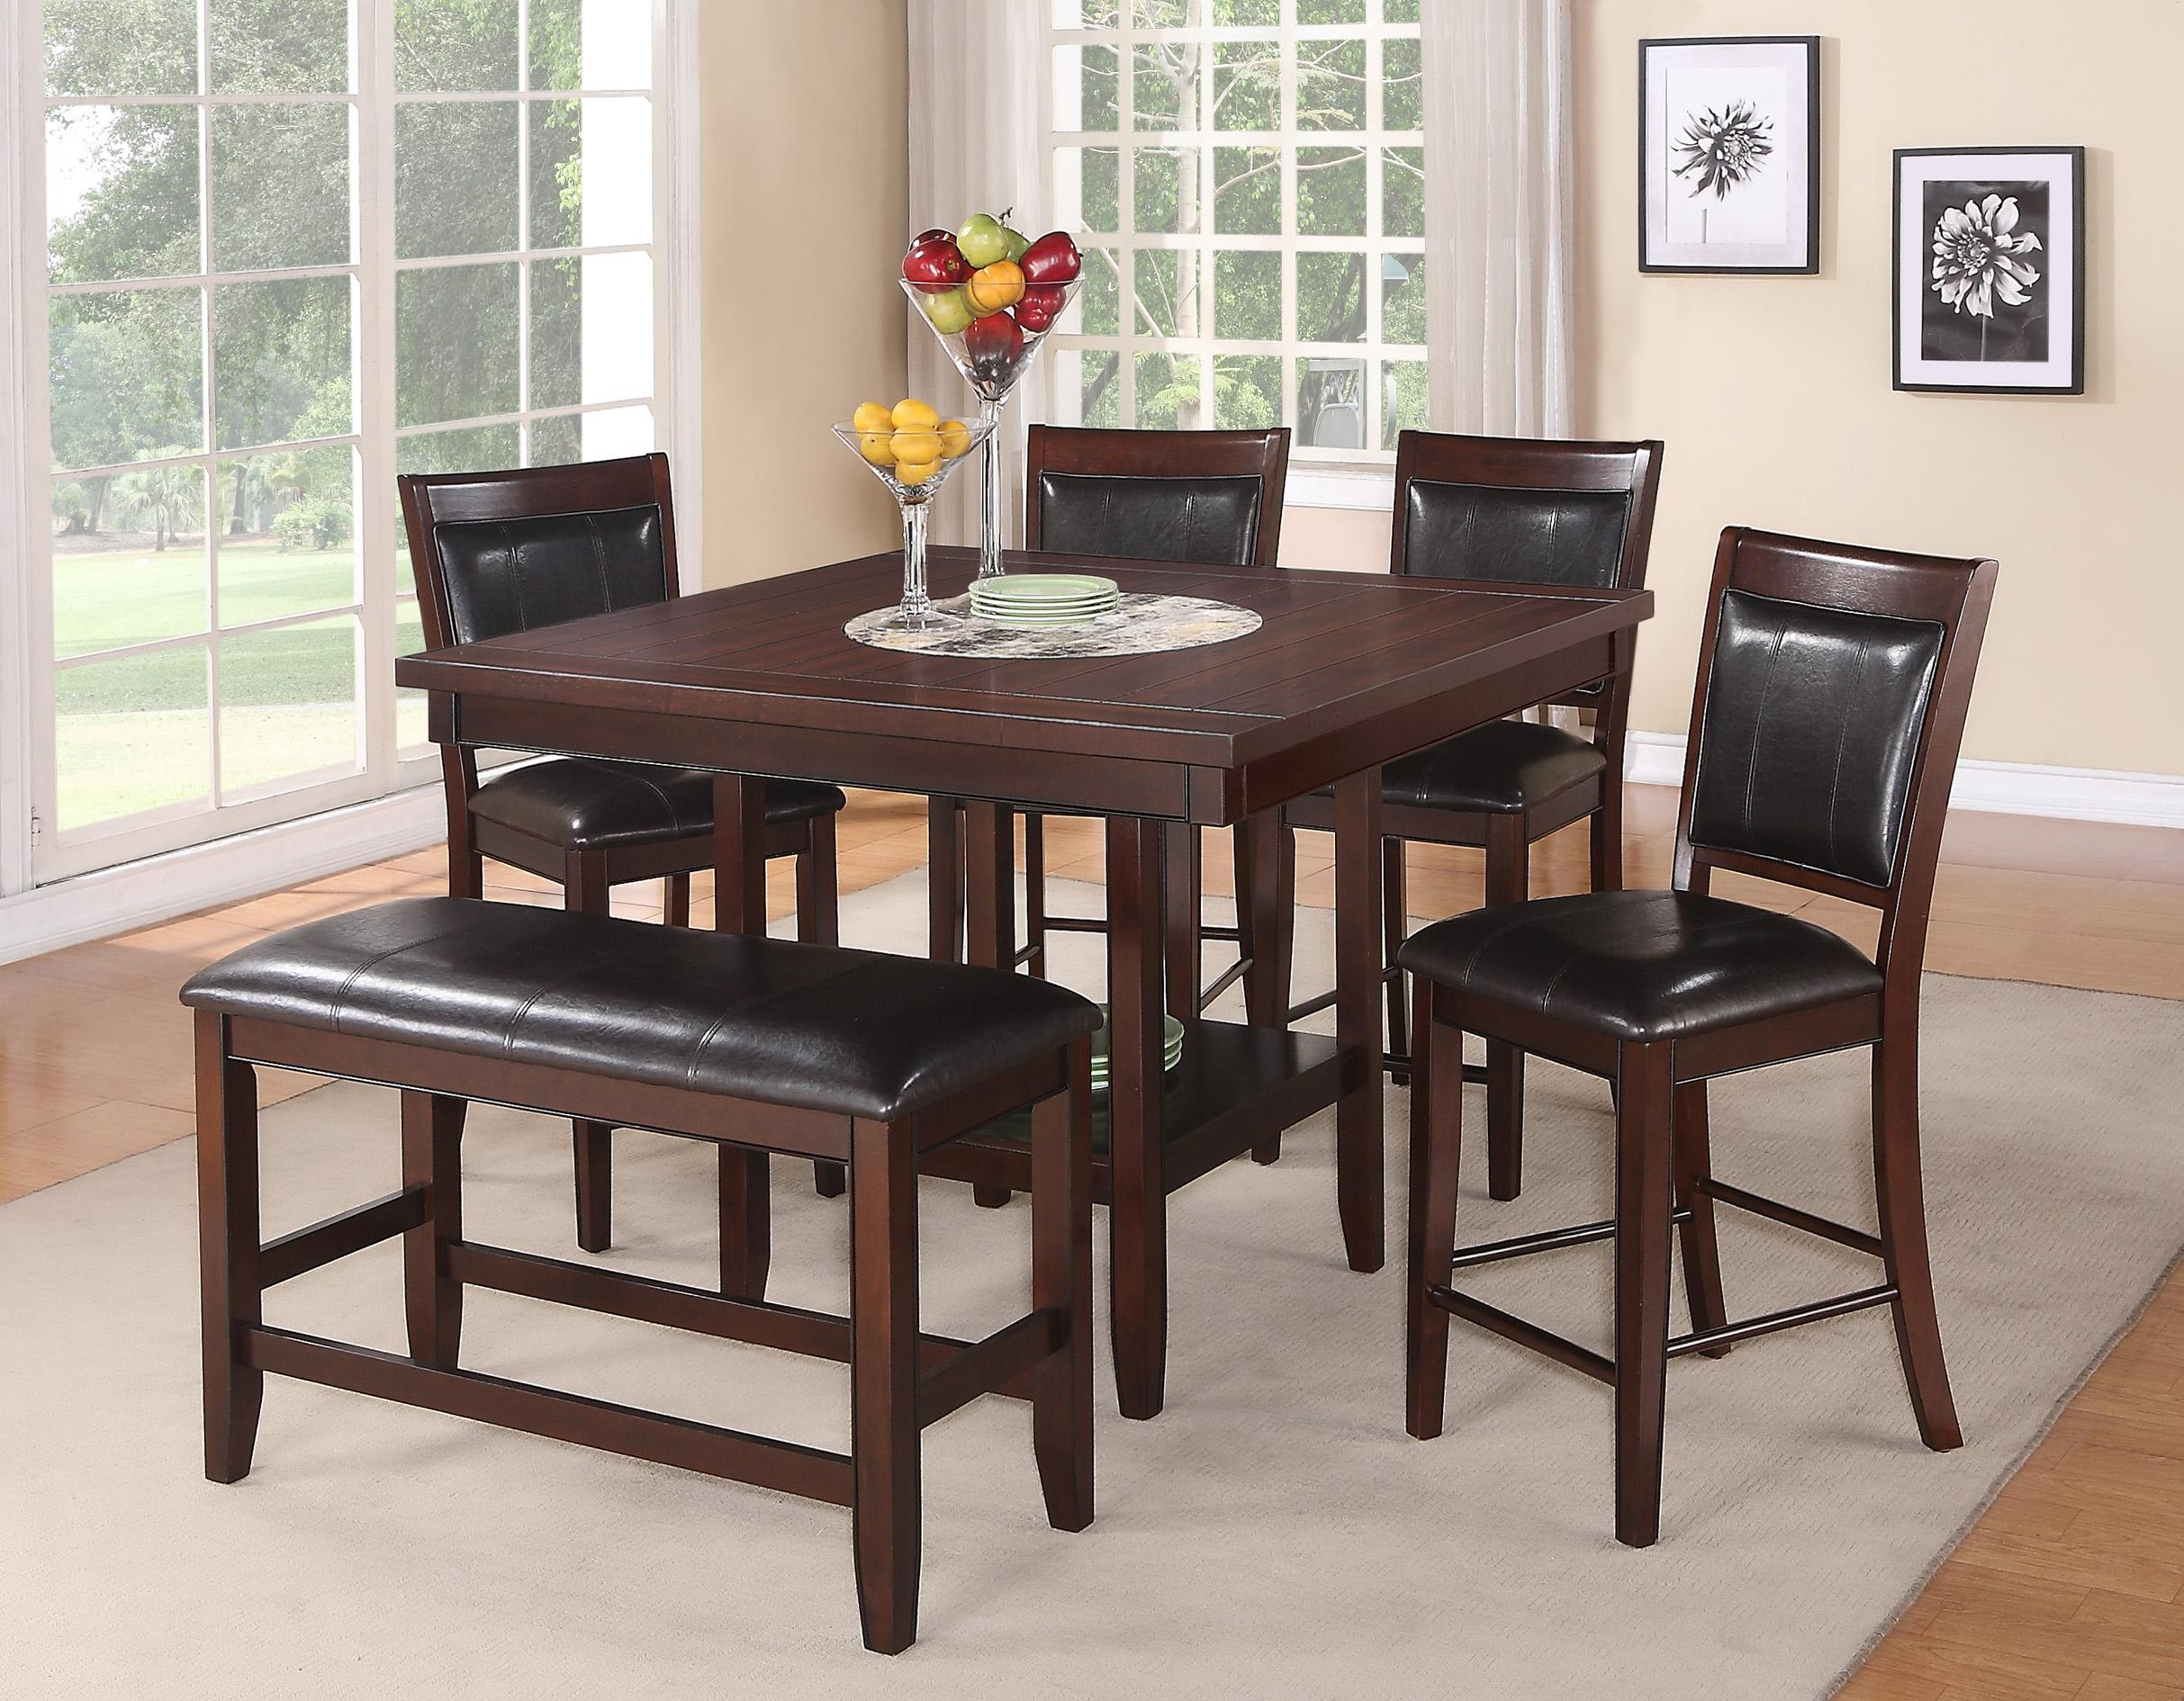 6 Pc Counter Height Table, Chair U0026 Bench Set   Fulton By Crown Mark    Wilcox Furniture   Table U0026 Chair Set With Bench Corpus Christi, Kingsville,  Calallen, ...